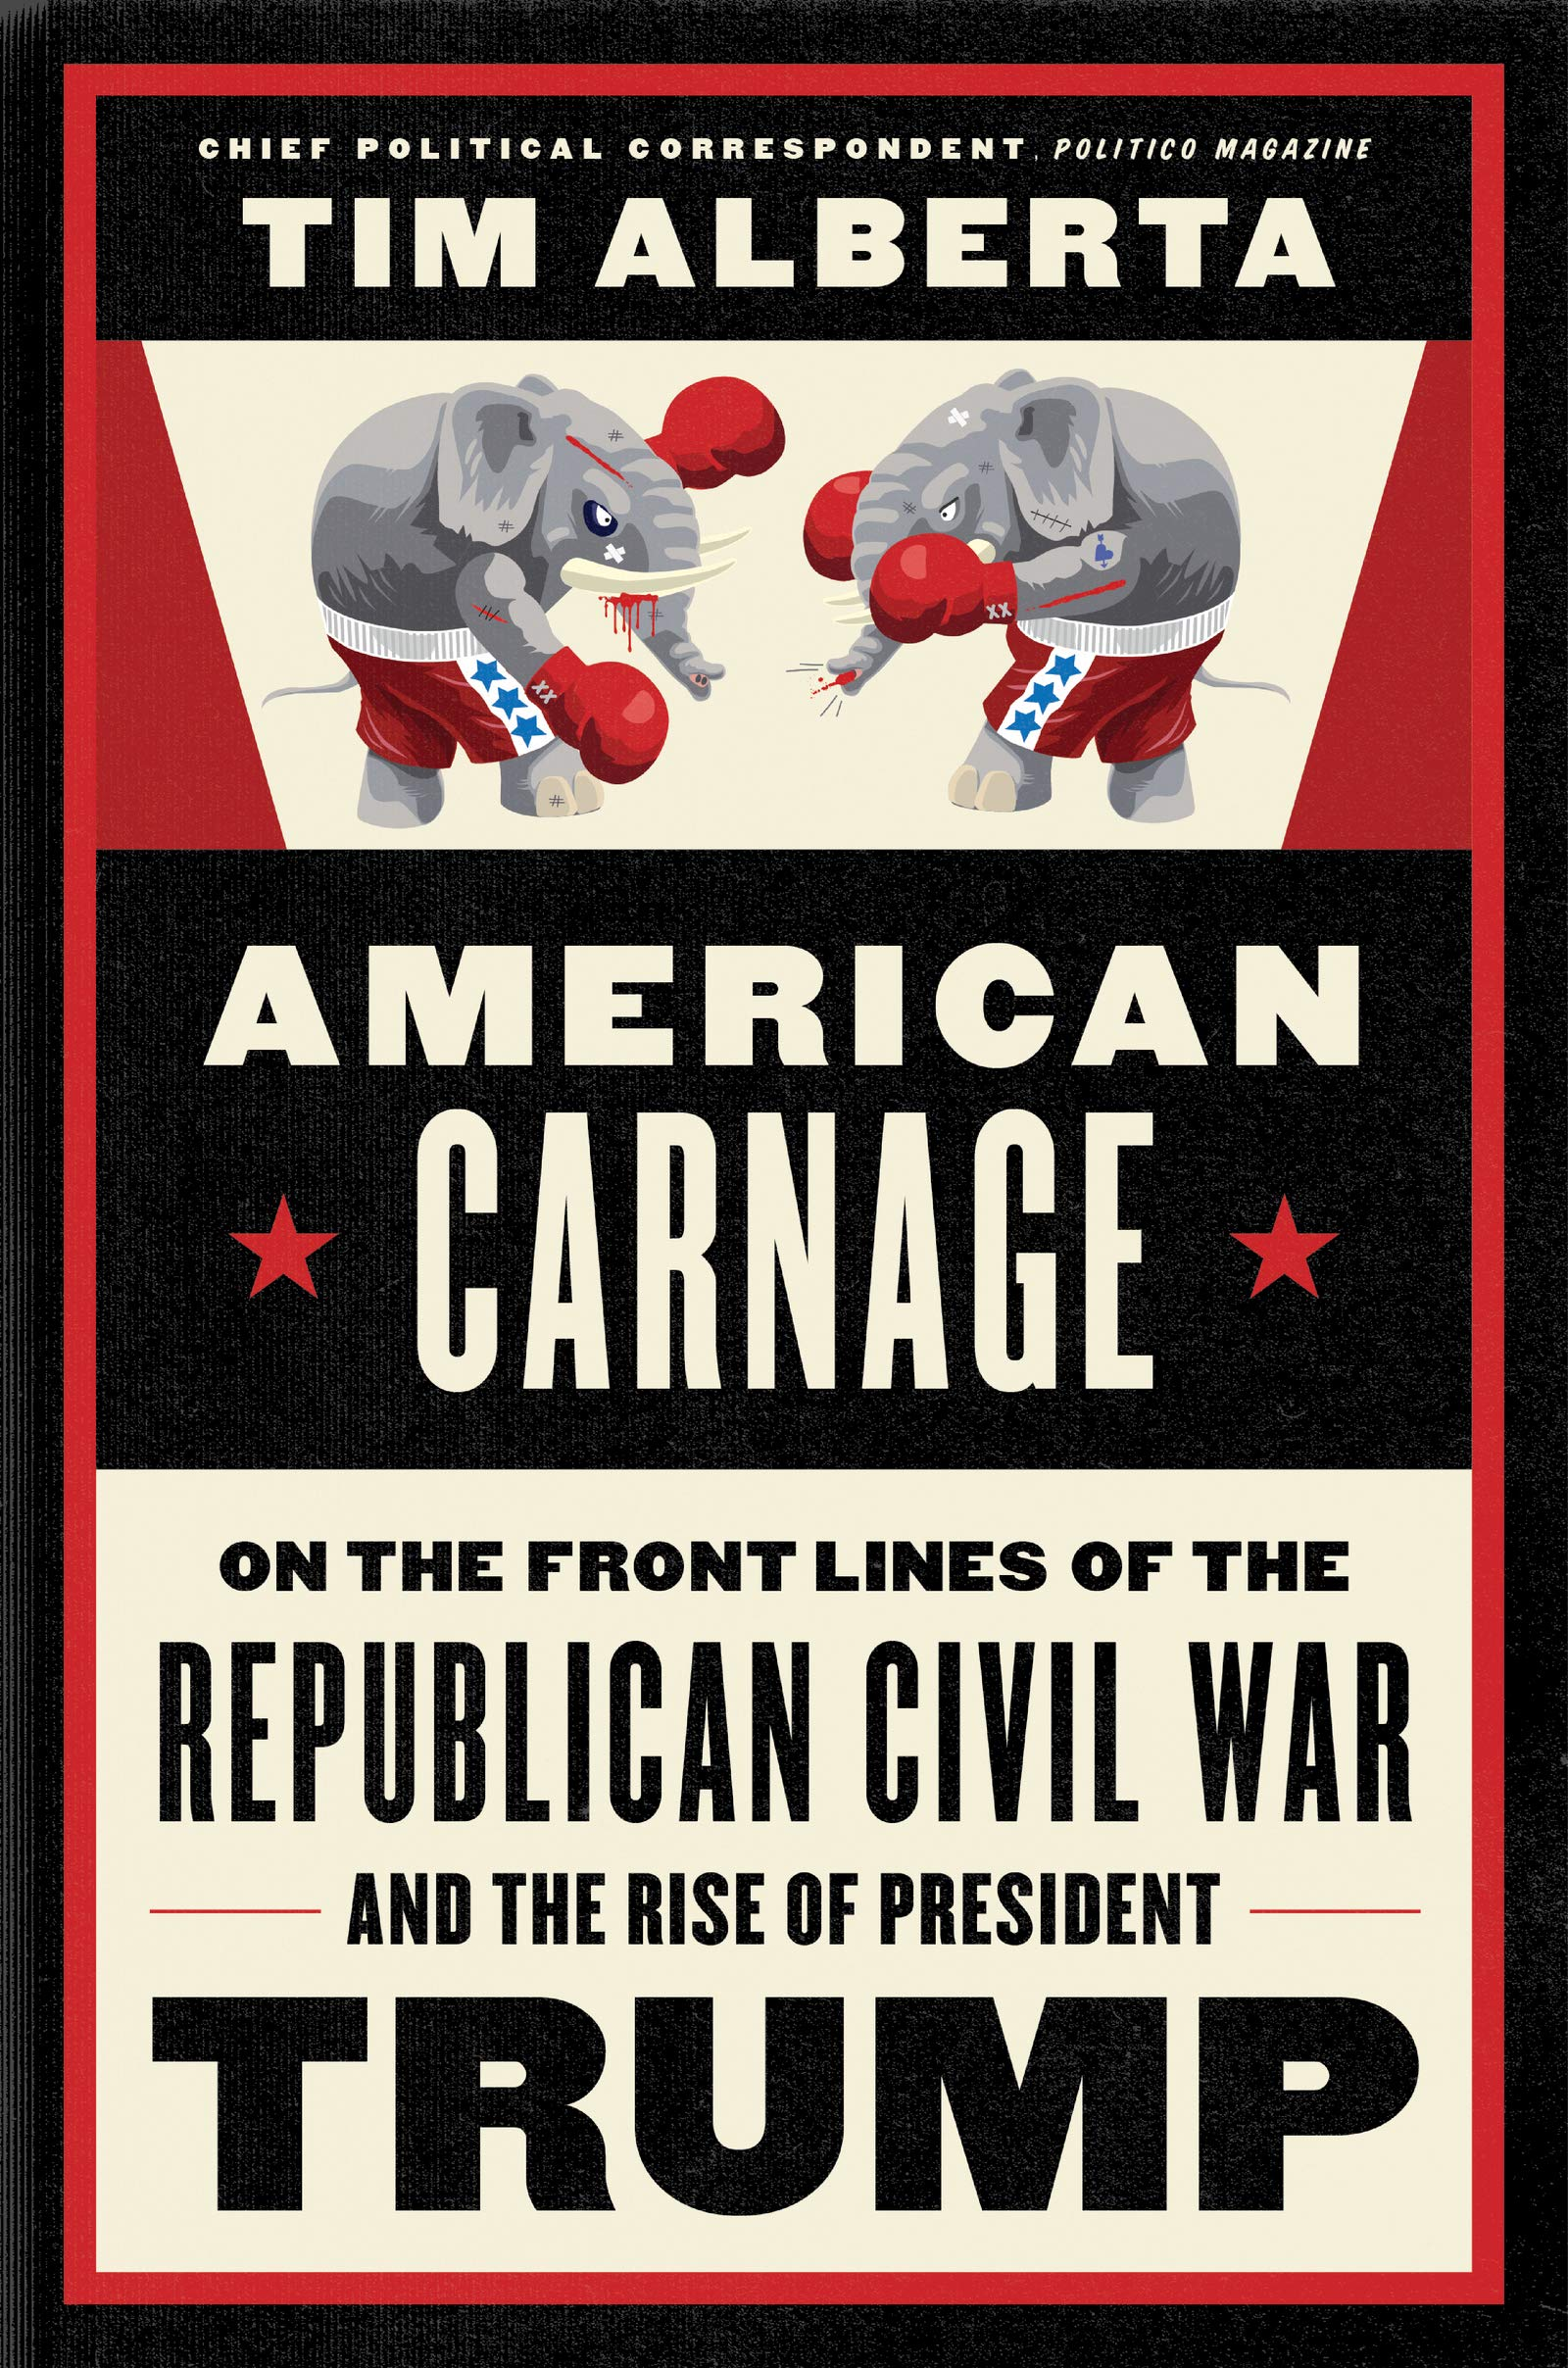 Tim Alberta explains in the podcast on American Carnage: The GOP change has been swift, stark, and you might be led to believe, all because of one person: Donald Trump. But is that true? Was Trump the cause or the most logical outcome? Perhaps more importantly, is there any going back? Is the GOP now the POT – the Party of Trump? Most simply: Is the Republican Party dead?